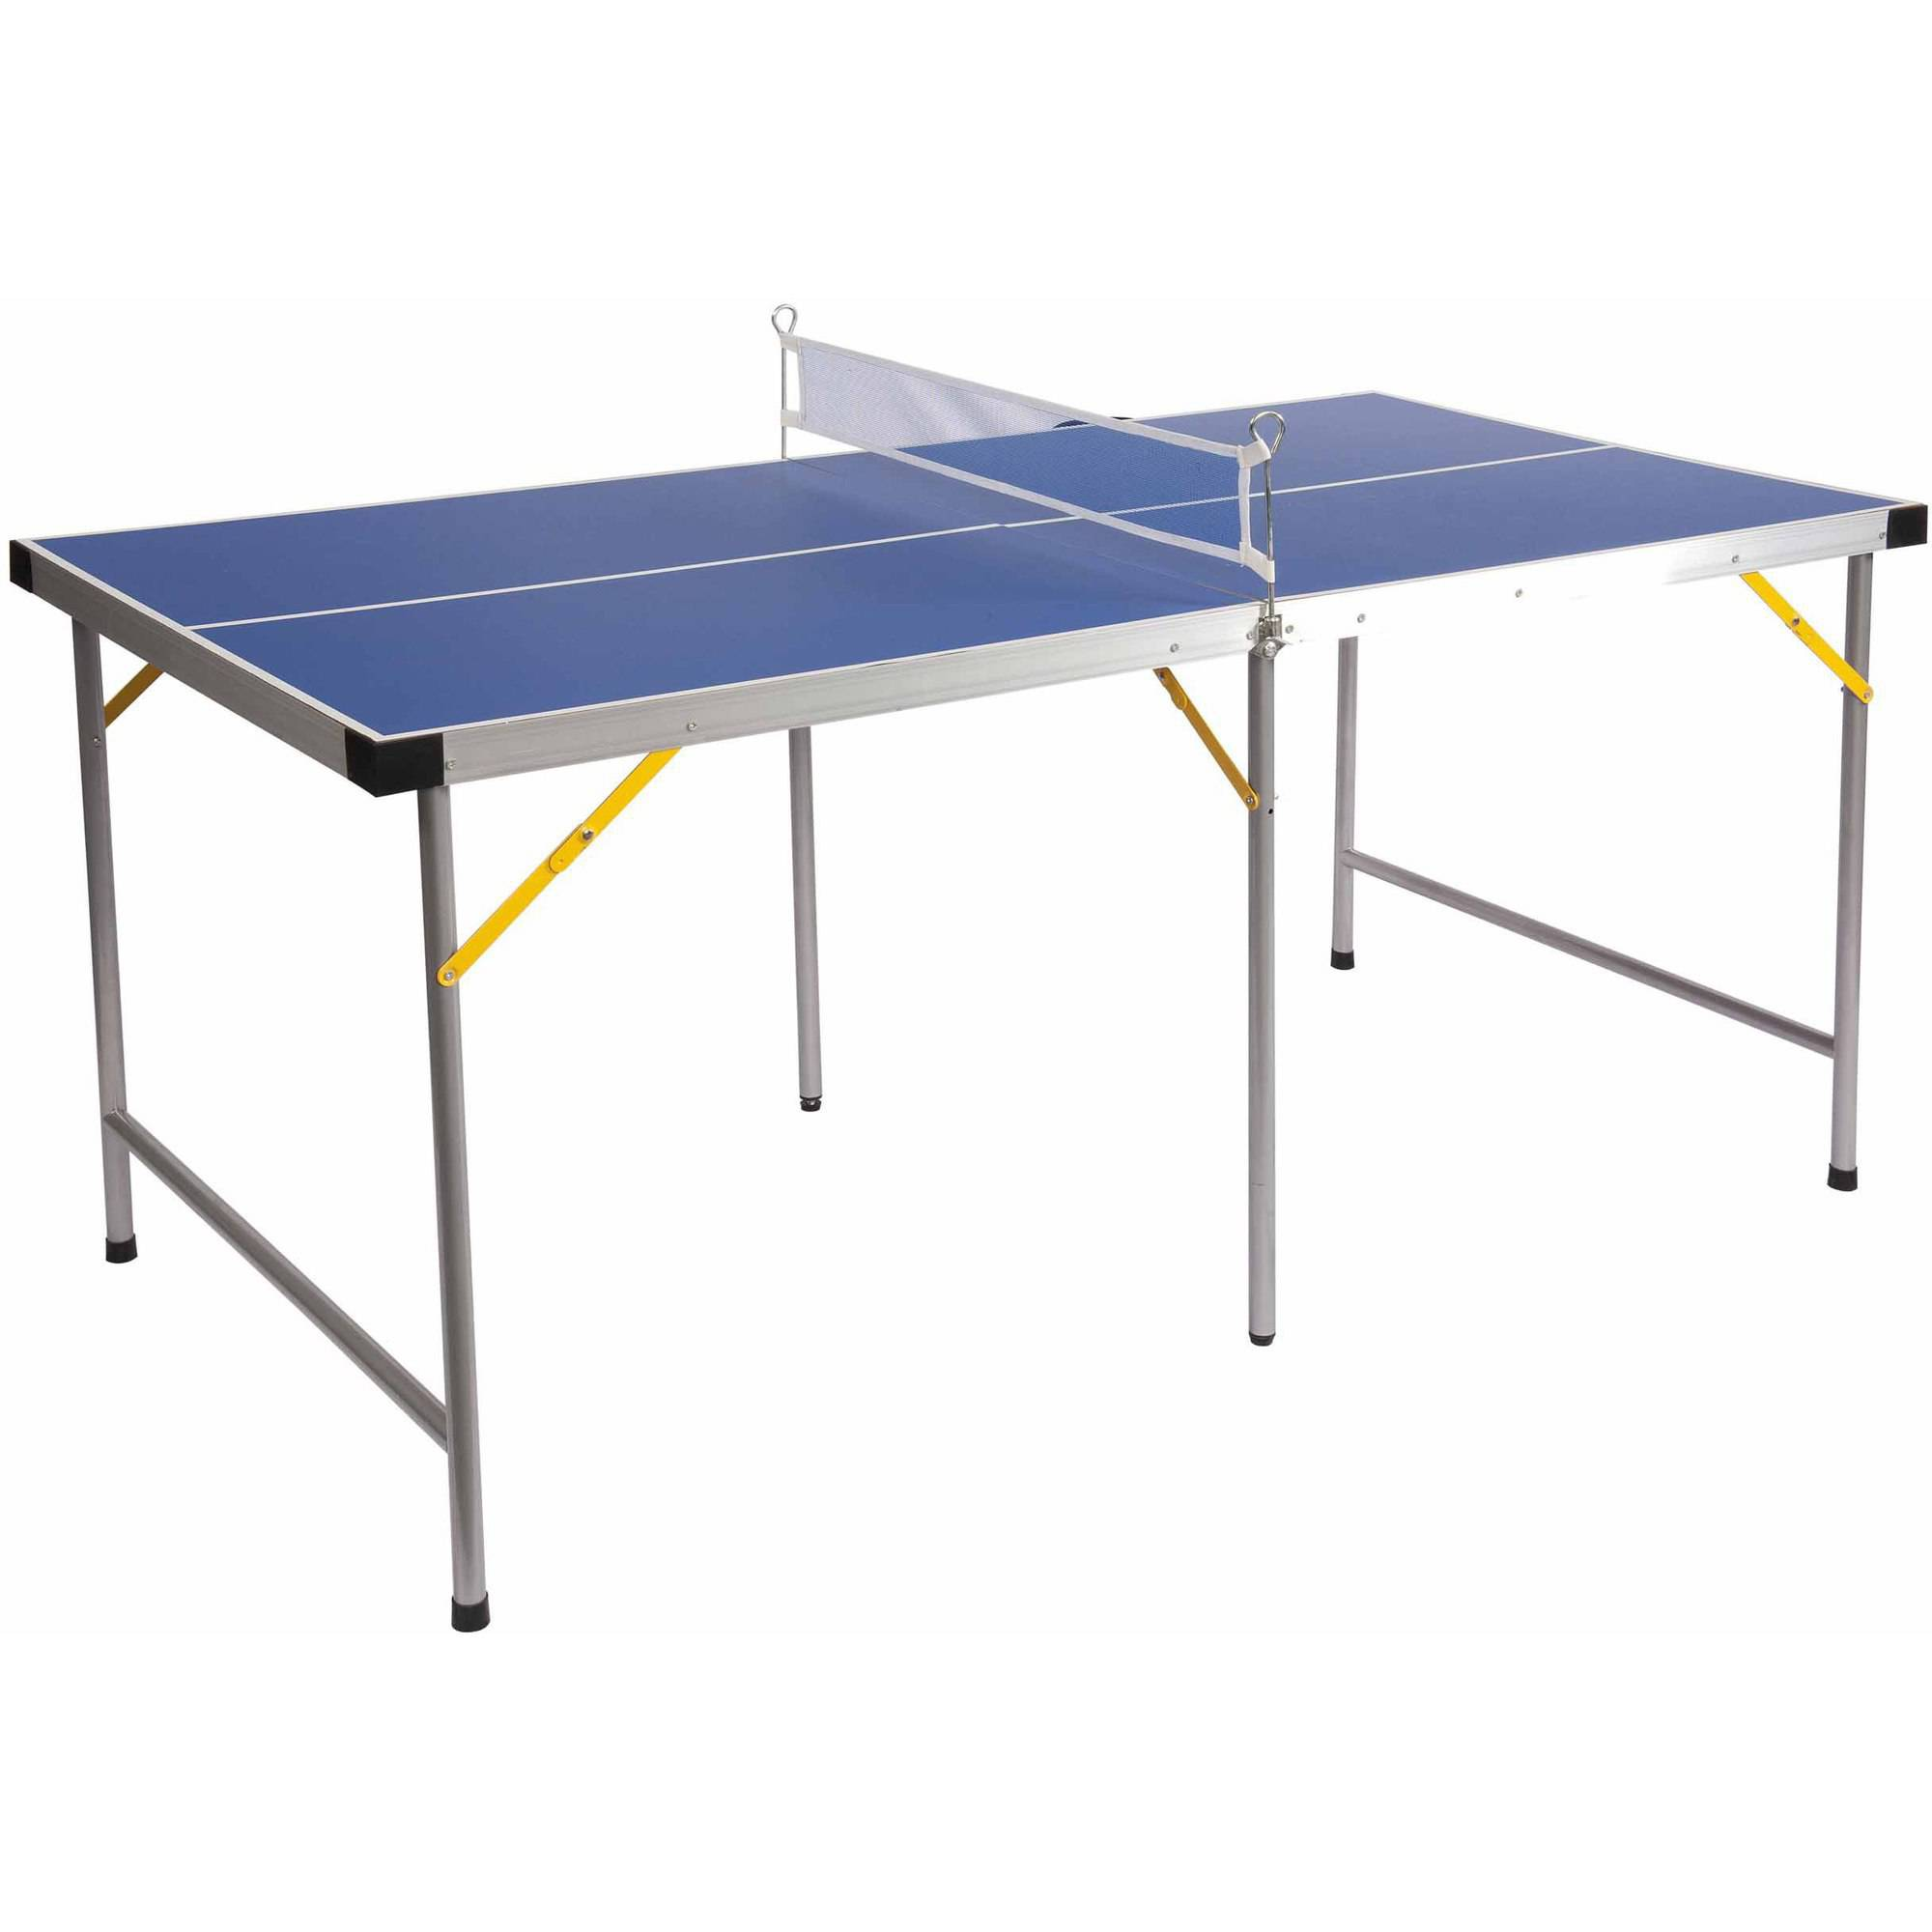 Lion Sports 5u0027 Folding Portable Table Tennis Ping Pong Table